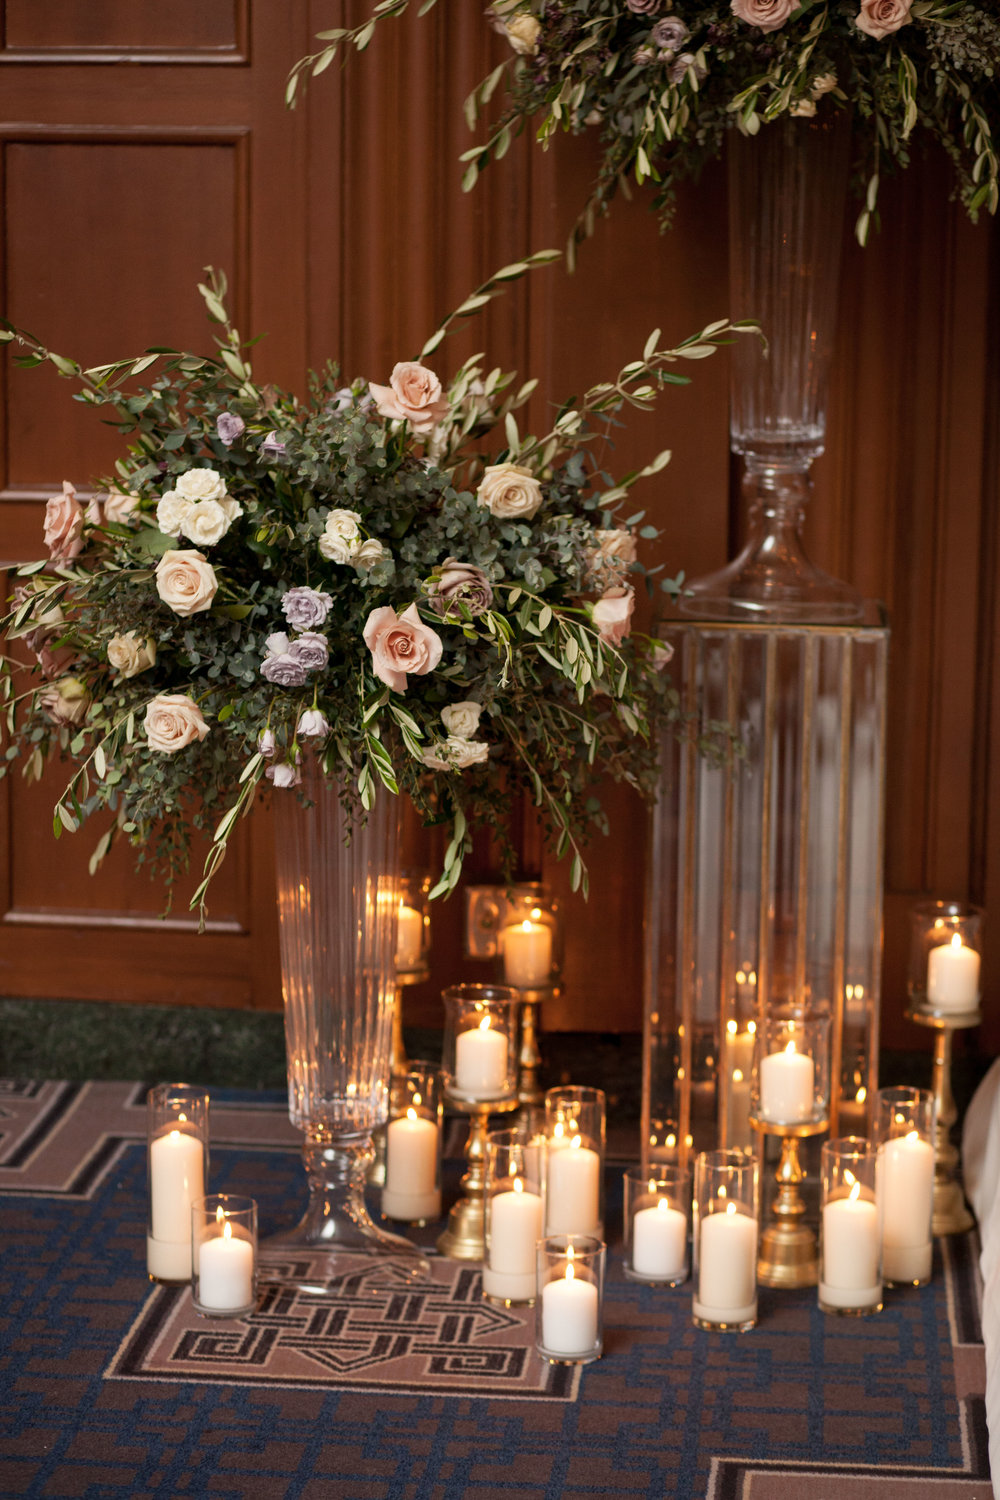 Fleur-Inc-Natalie-Probst-Photography-Lola-Event-Productions-Hotel-Allegro-Ceremony